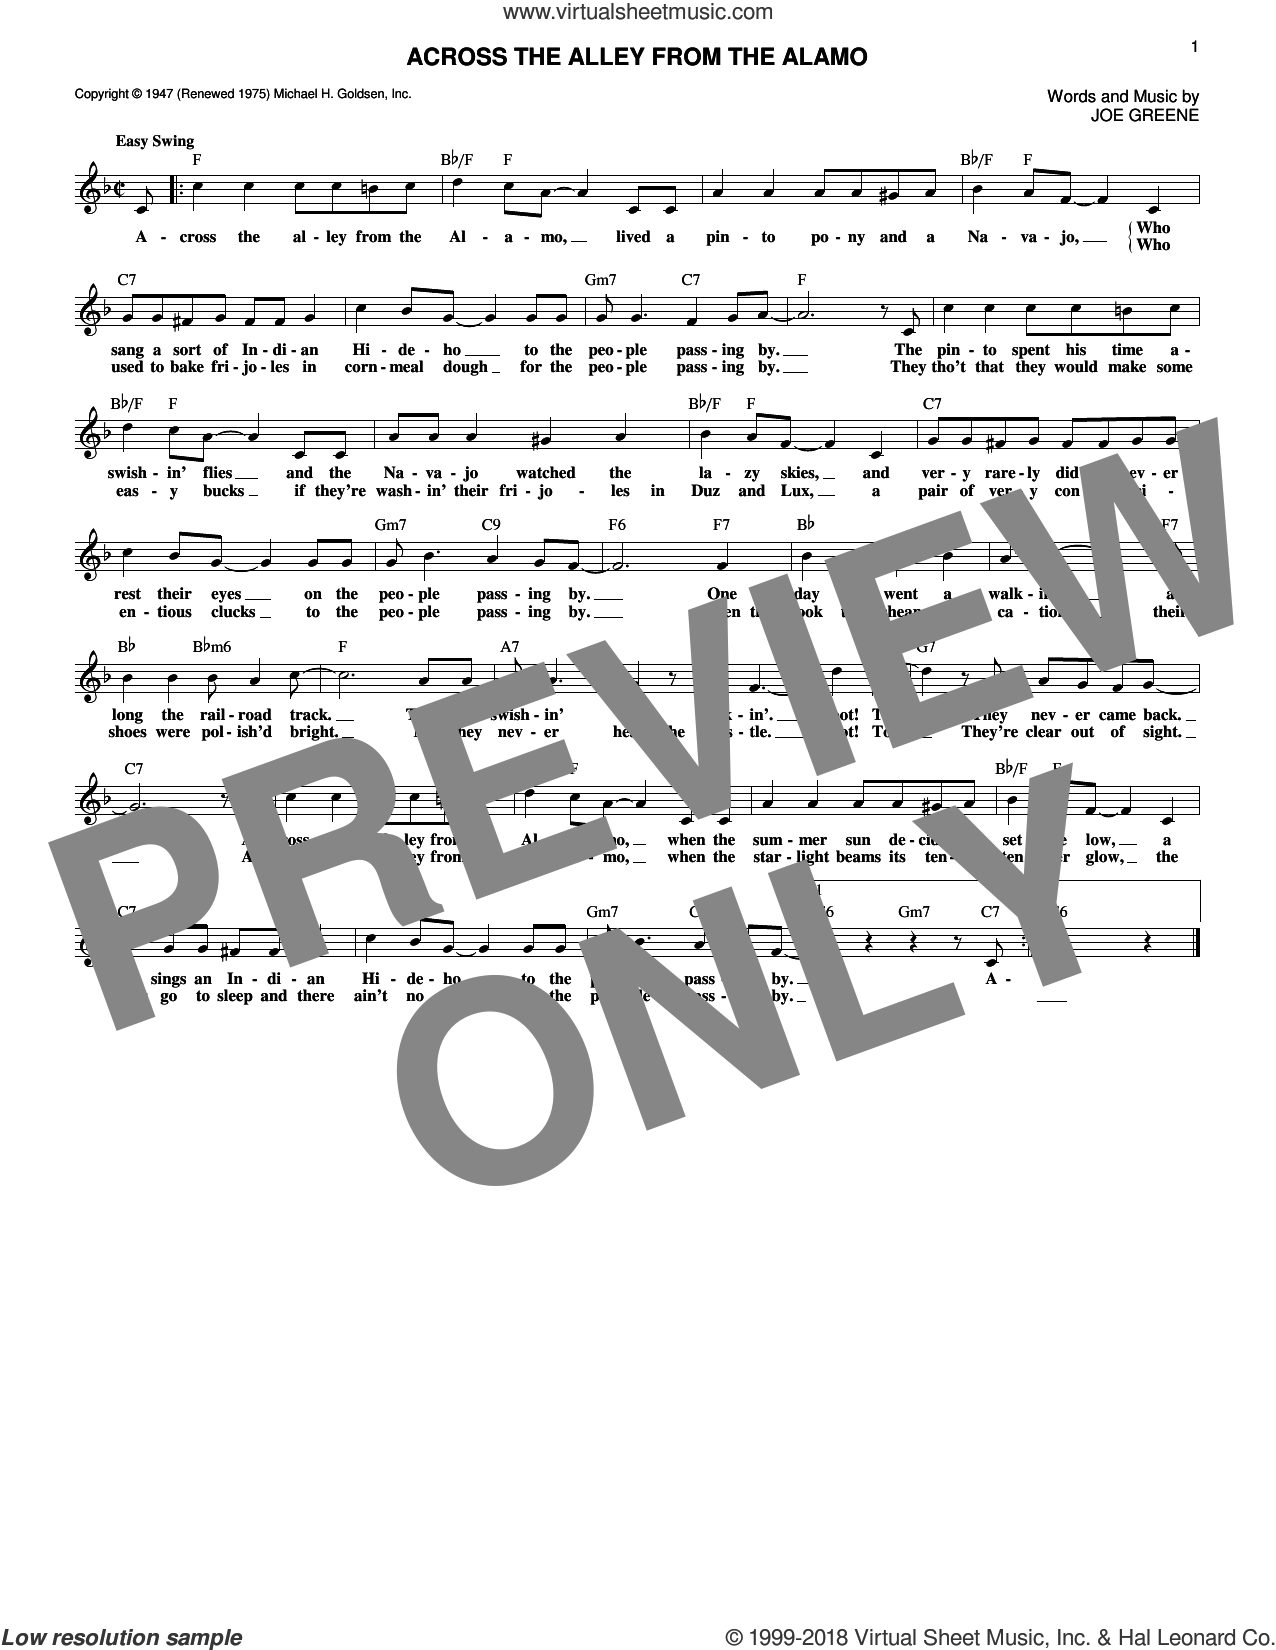 Across The Alley From The Alamo sheet music for voice and other instruments (fake book) by Joe Greene, intermediate